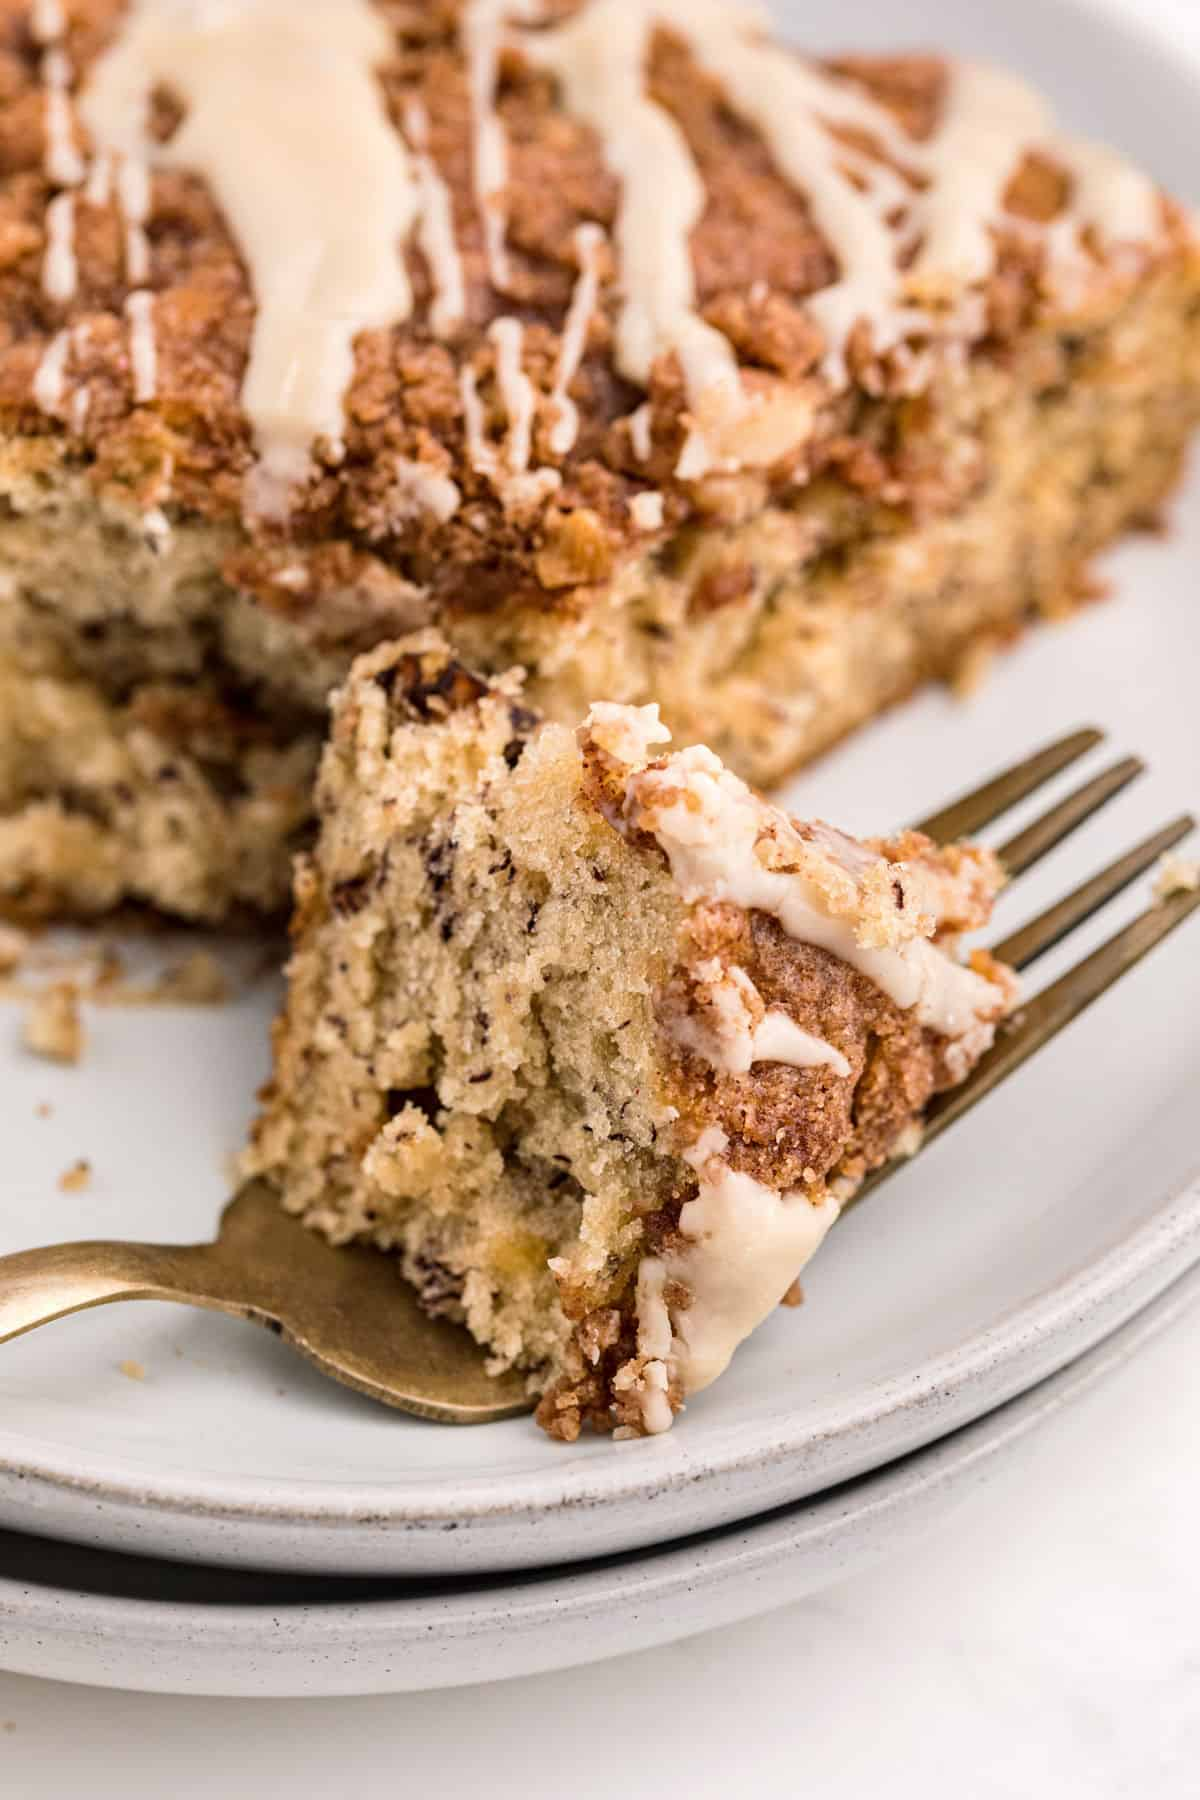 Slice of banana coffee cake with one bite on a fork.